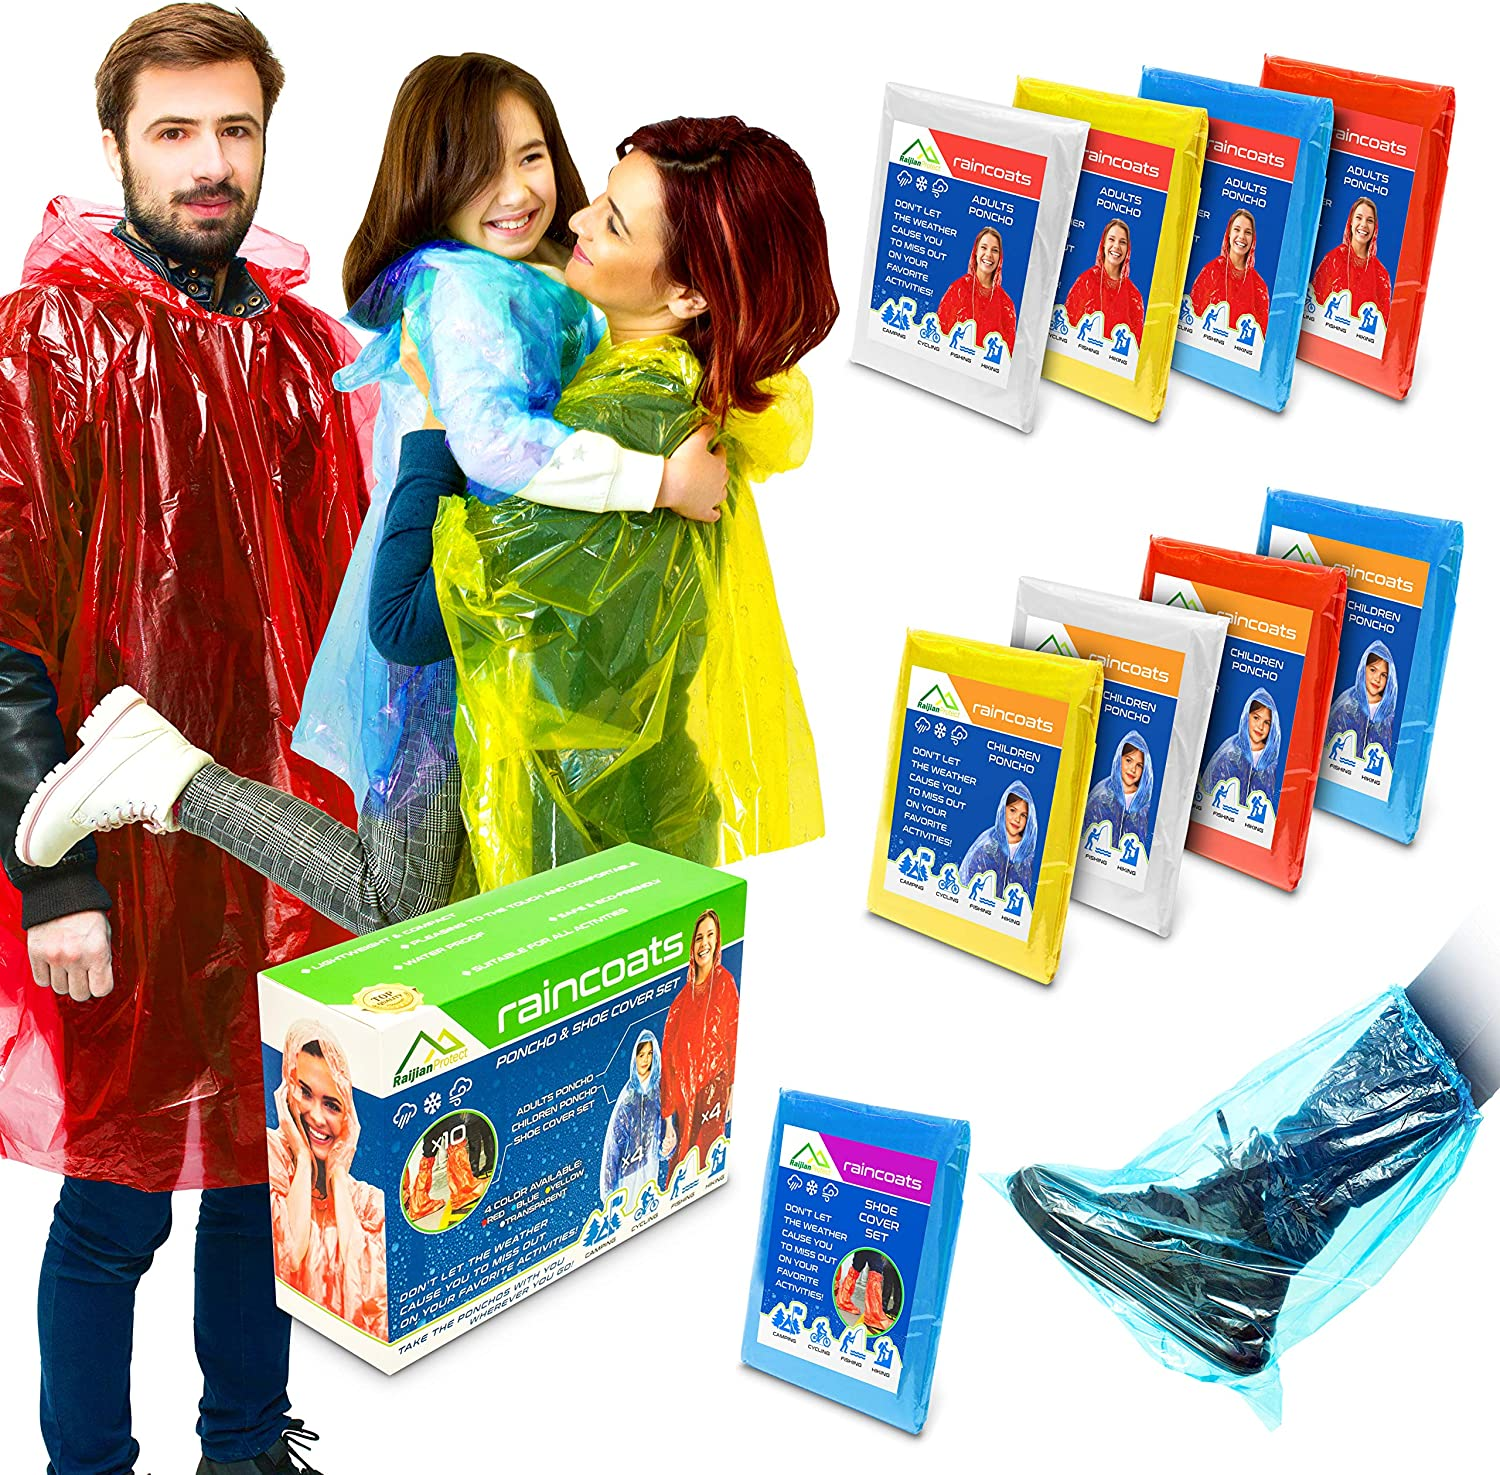 Rain Ponchos for Adults and Kids I Ponchos Family Pack I Rain Coats for Men and Women with Shoe Covers: Sports & Outdoors